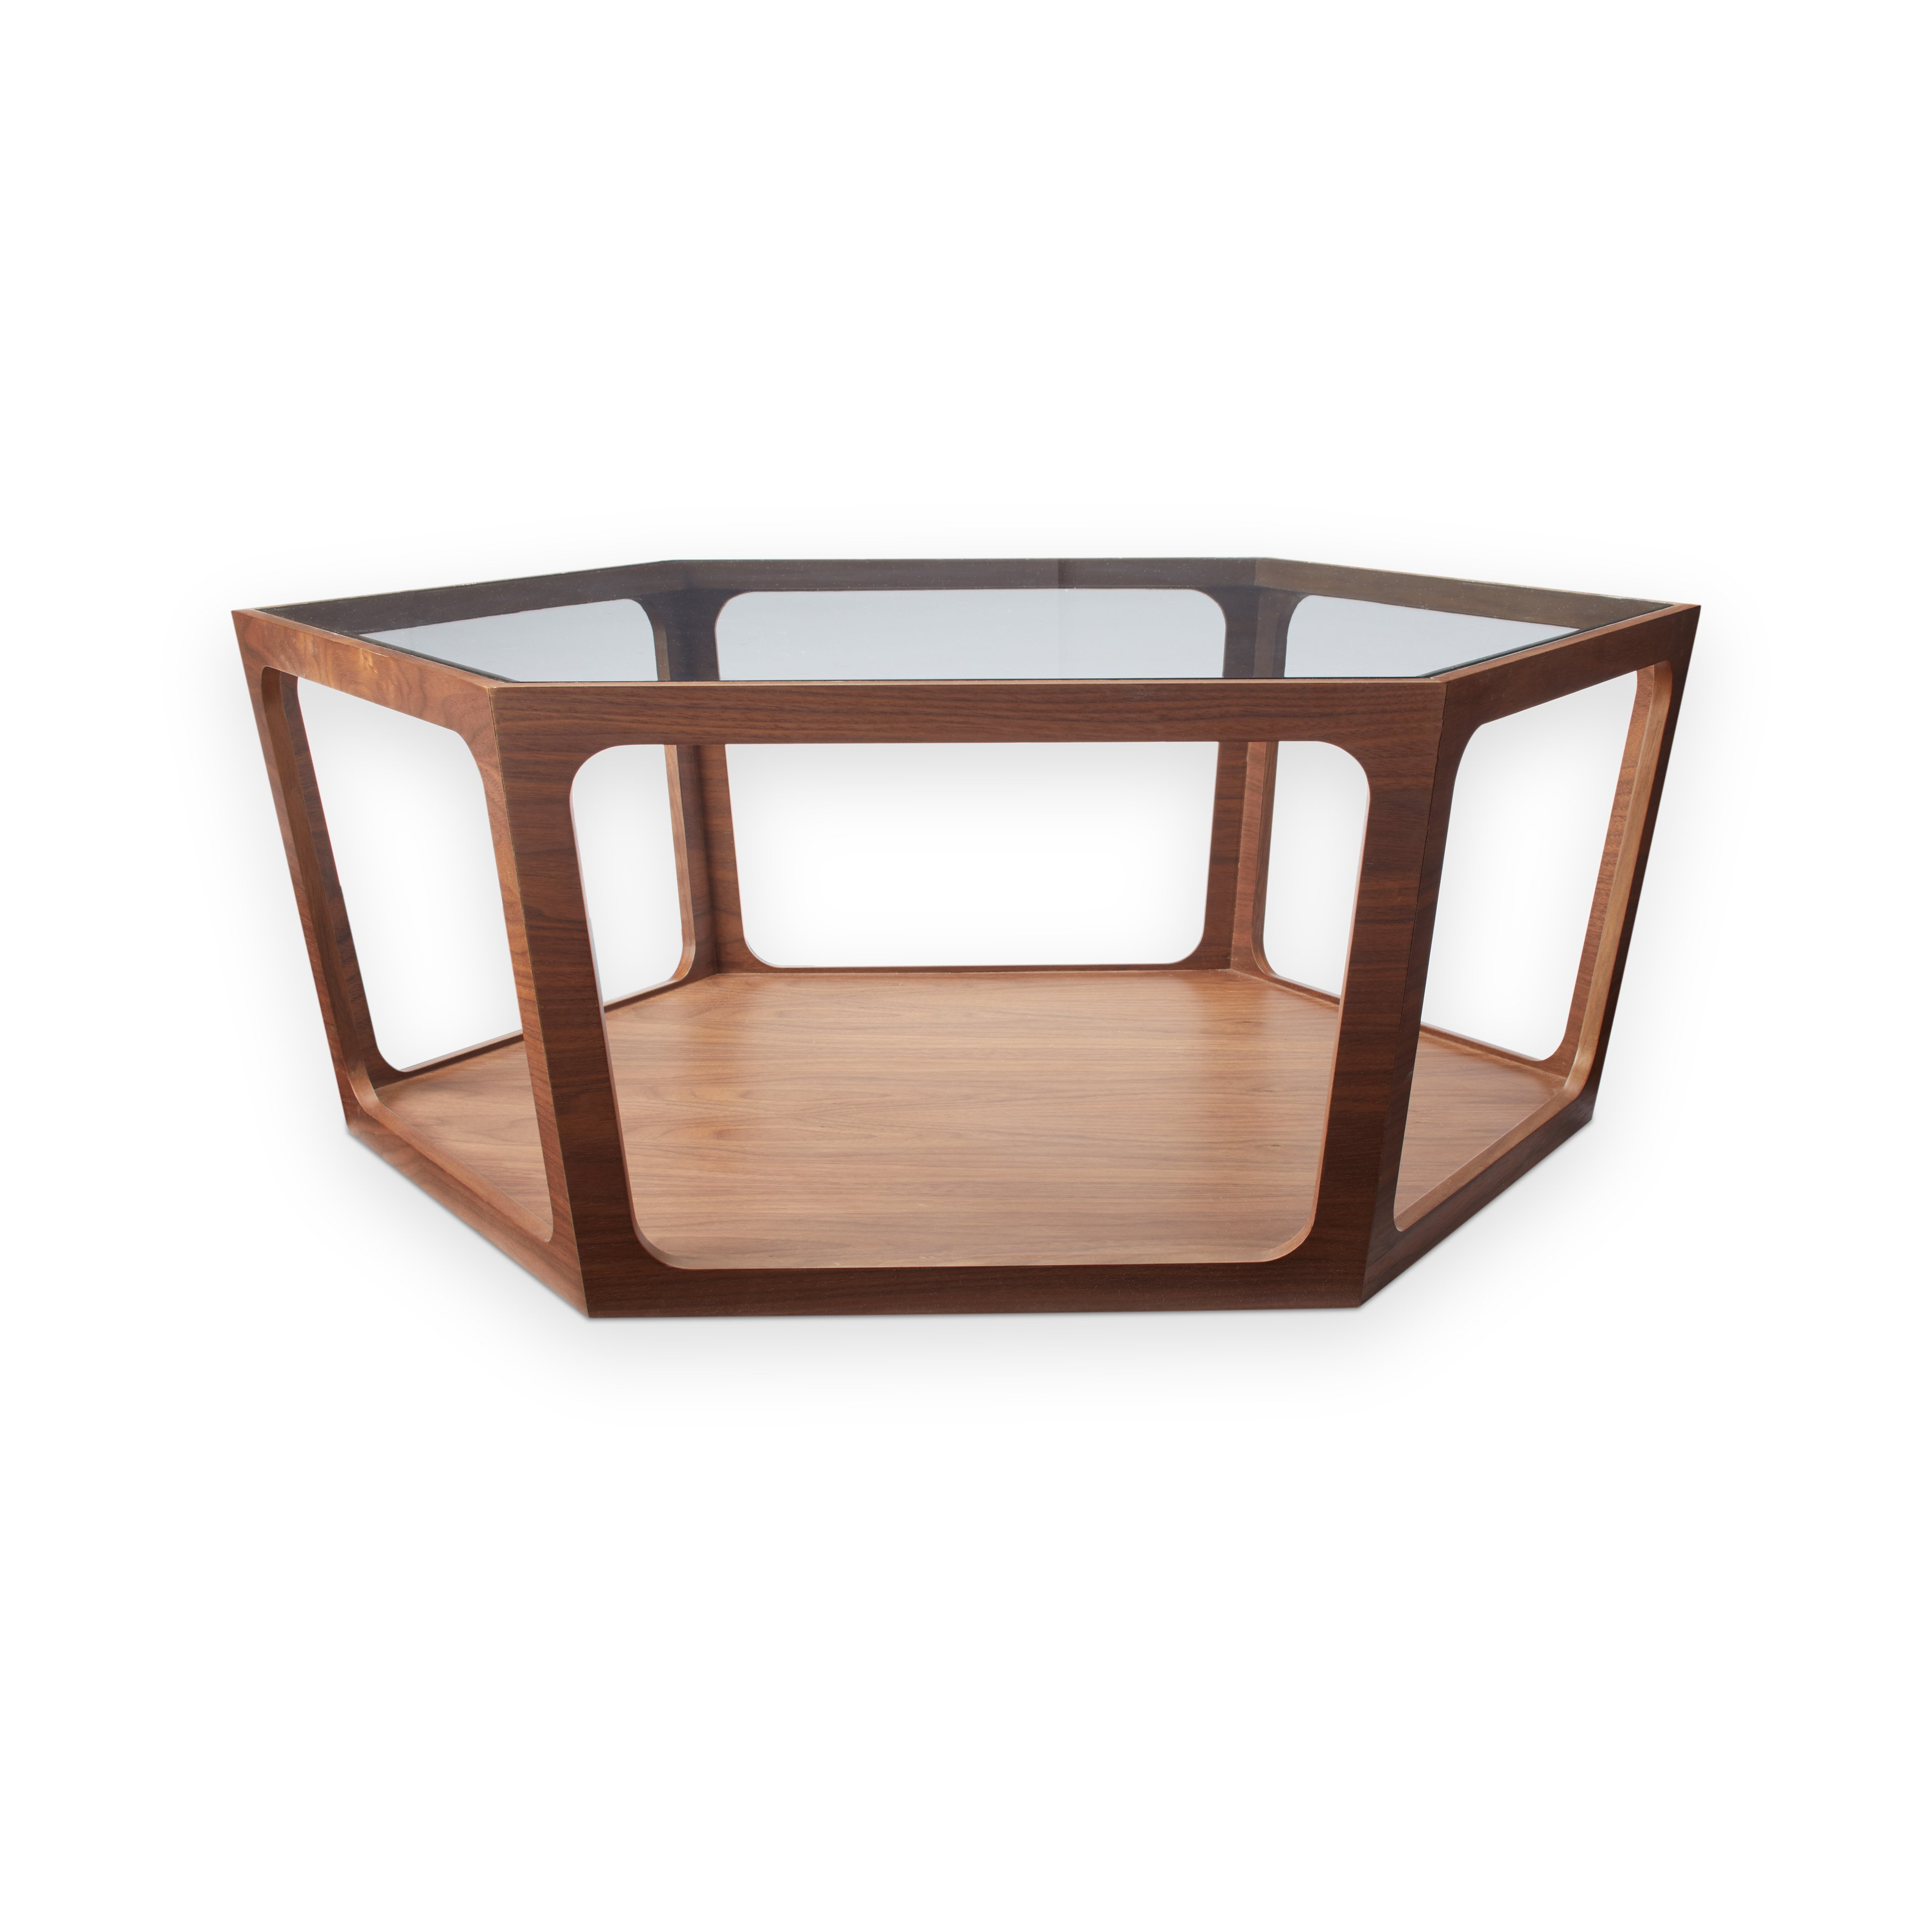 Widely Used Verona Cocktail Tables Inside Shop Abbyson Verona Walnut Coffee Table – On Sale – Free Shipping (View 20 of 20)